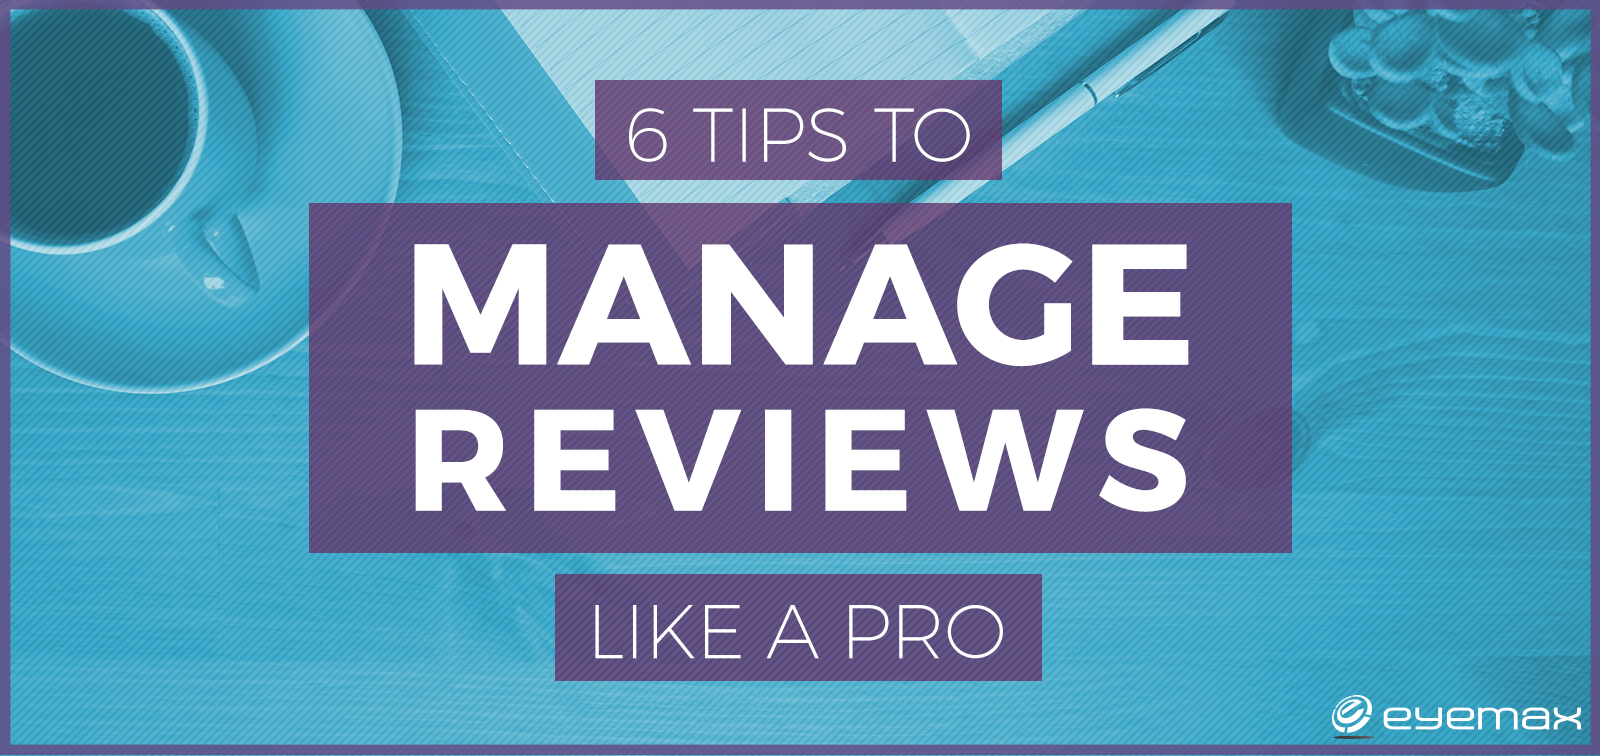 6 Tips to Manage Online Reviews like a Pro